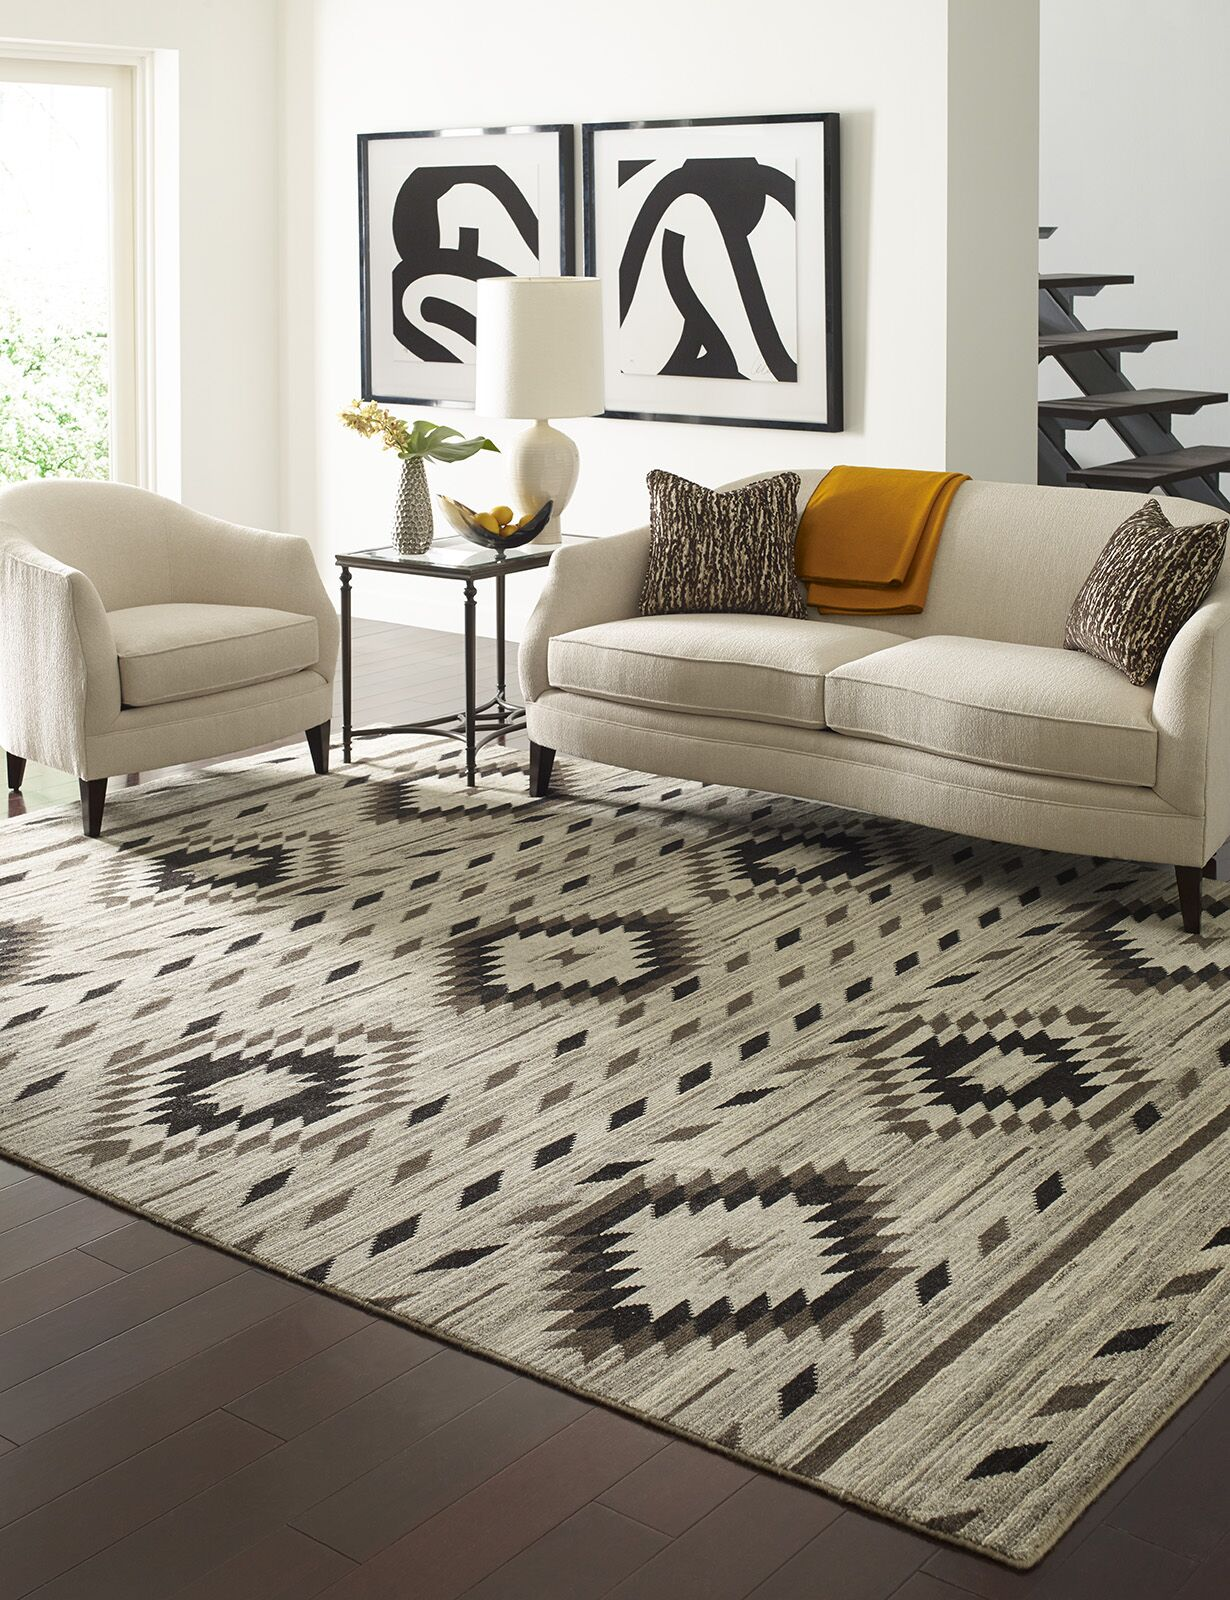 Reading Hand-Knotted Wool Ivory Area Rug Rug Size: Rectangle 3' x 5'